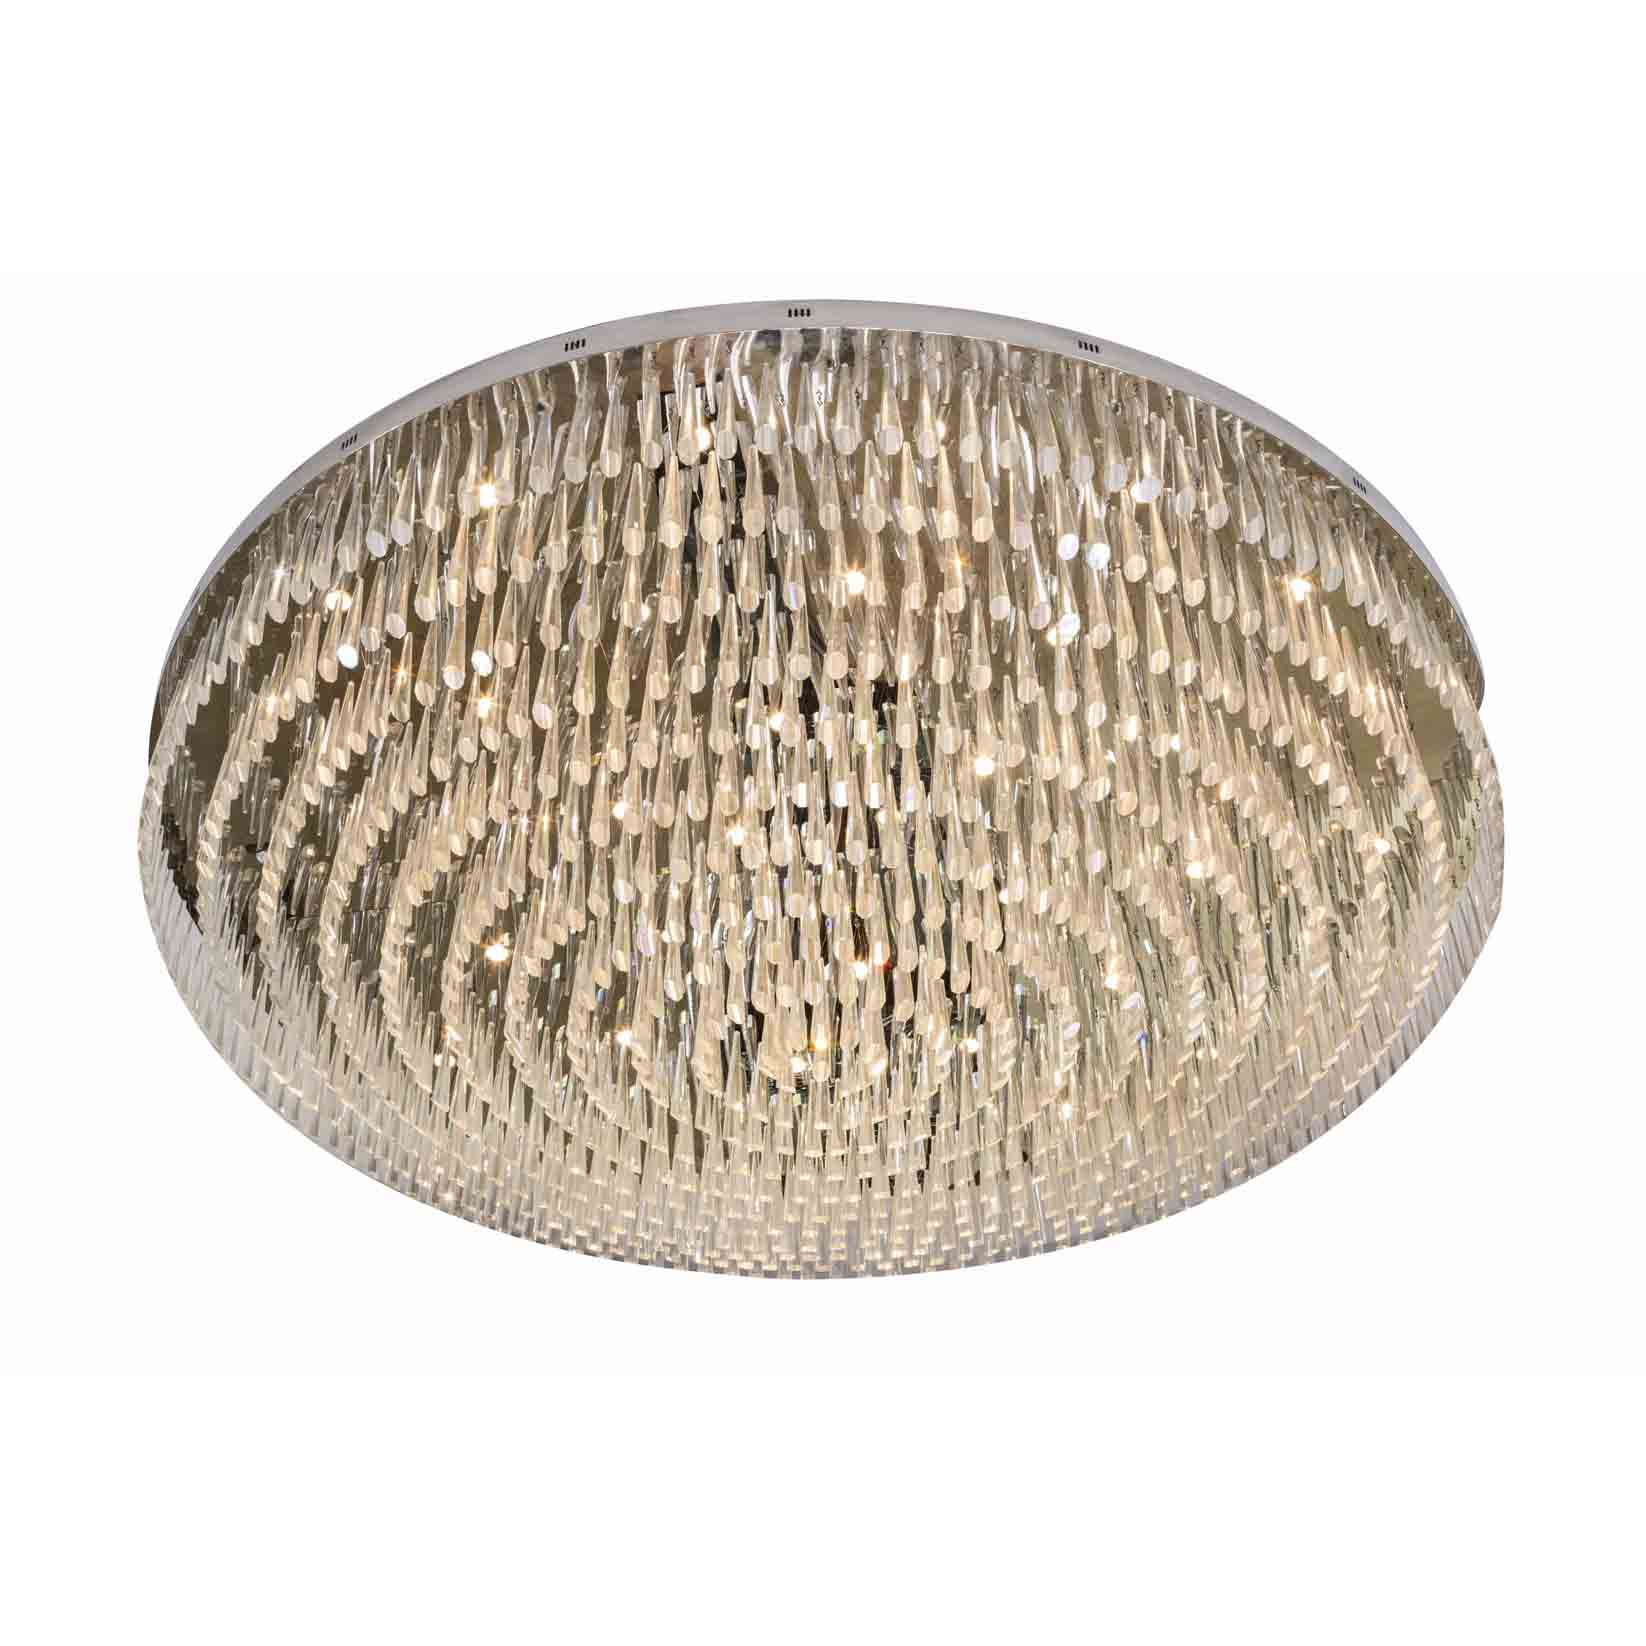 EME LIGHTING wholesale chandeliers china round for dining room